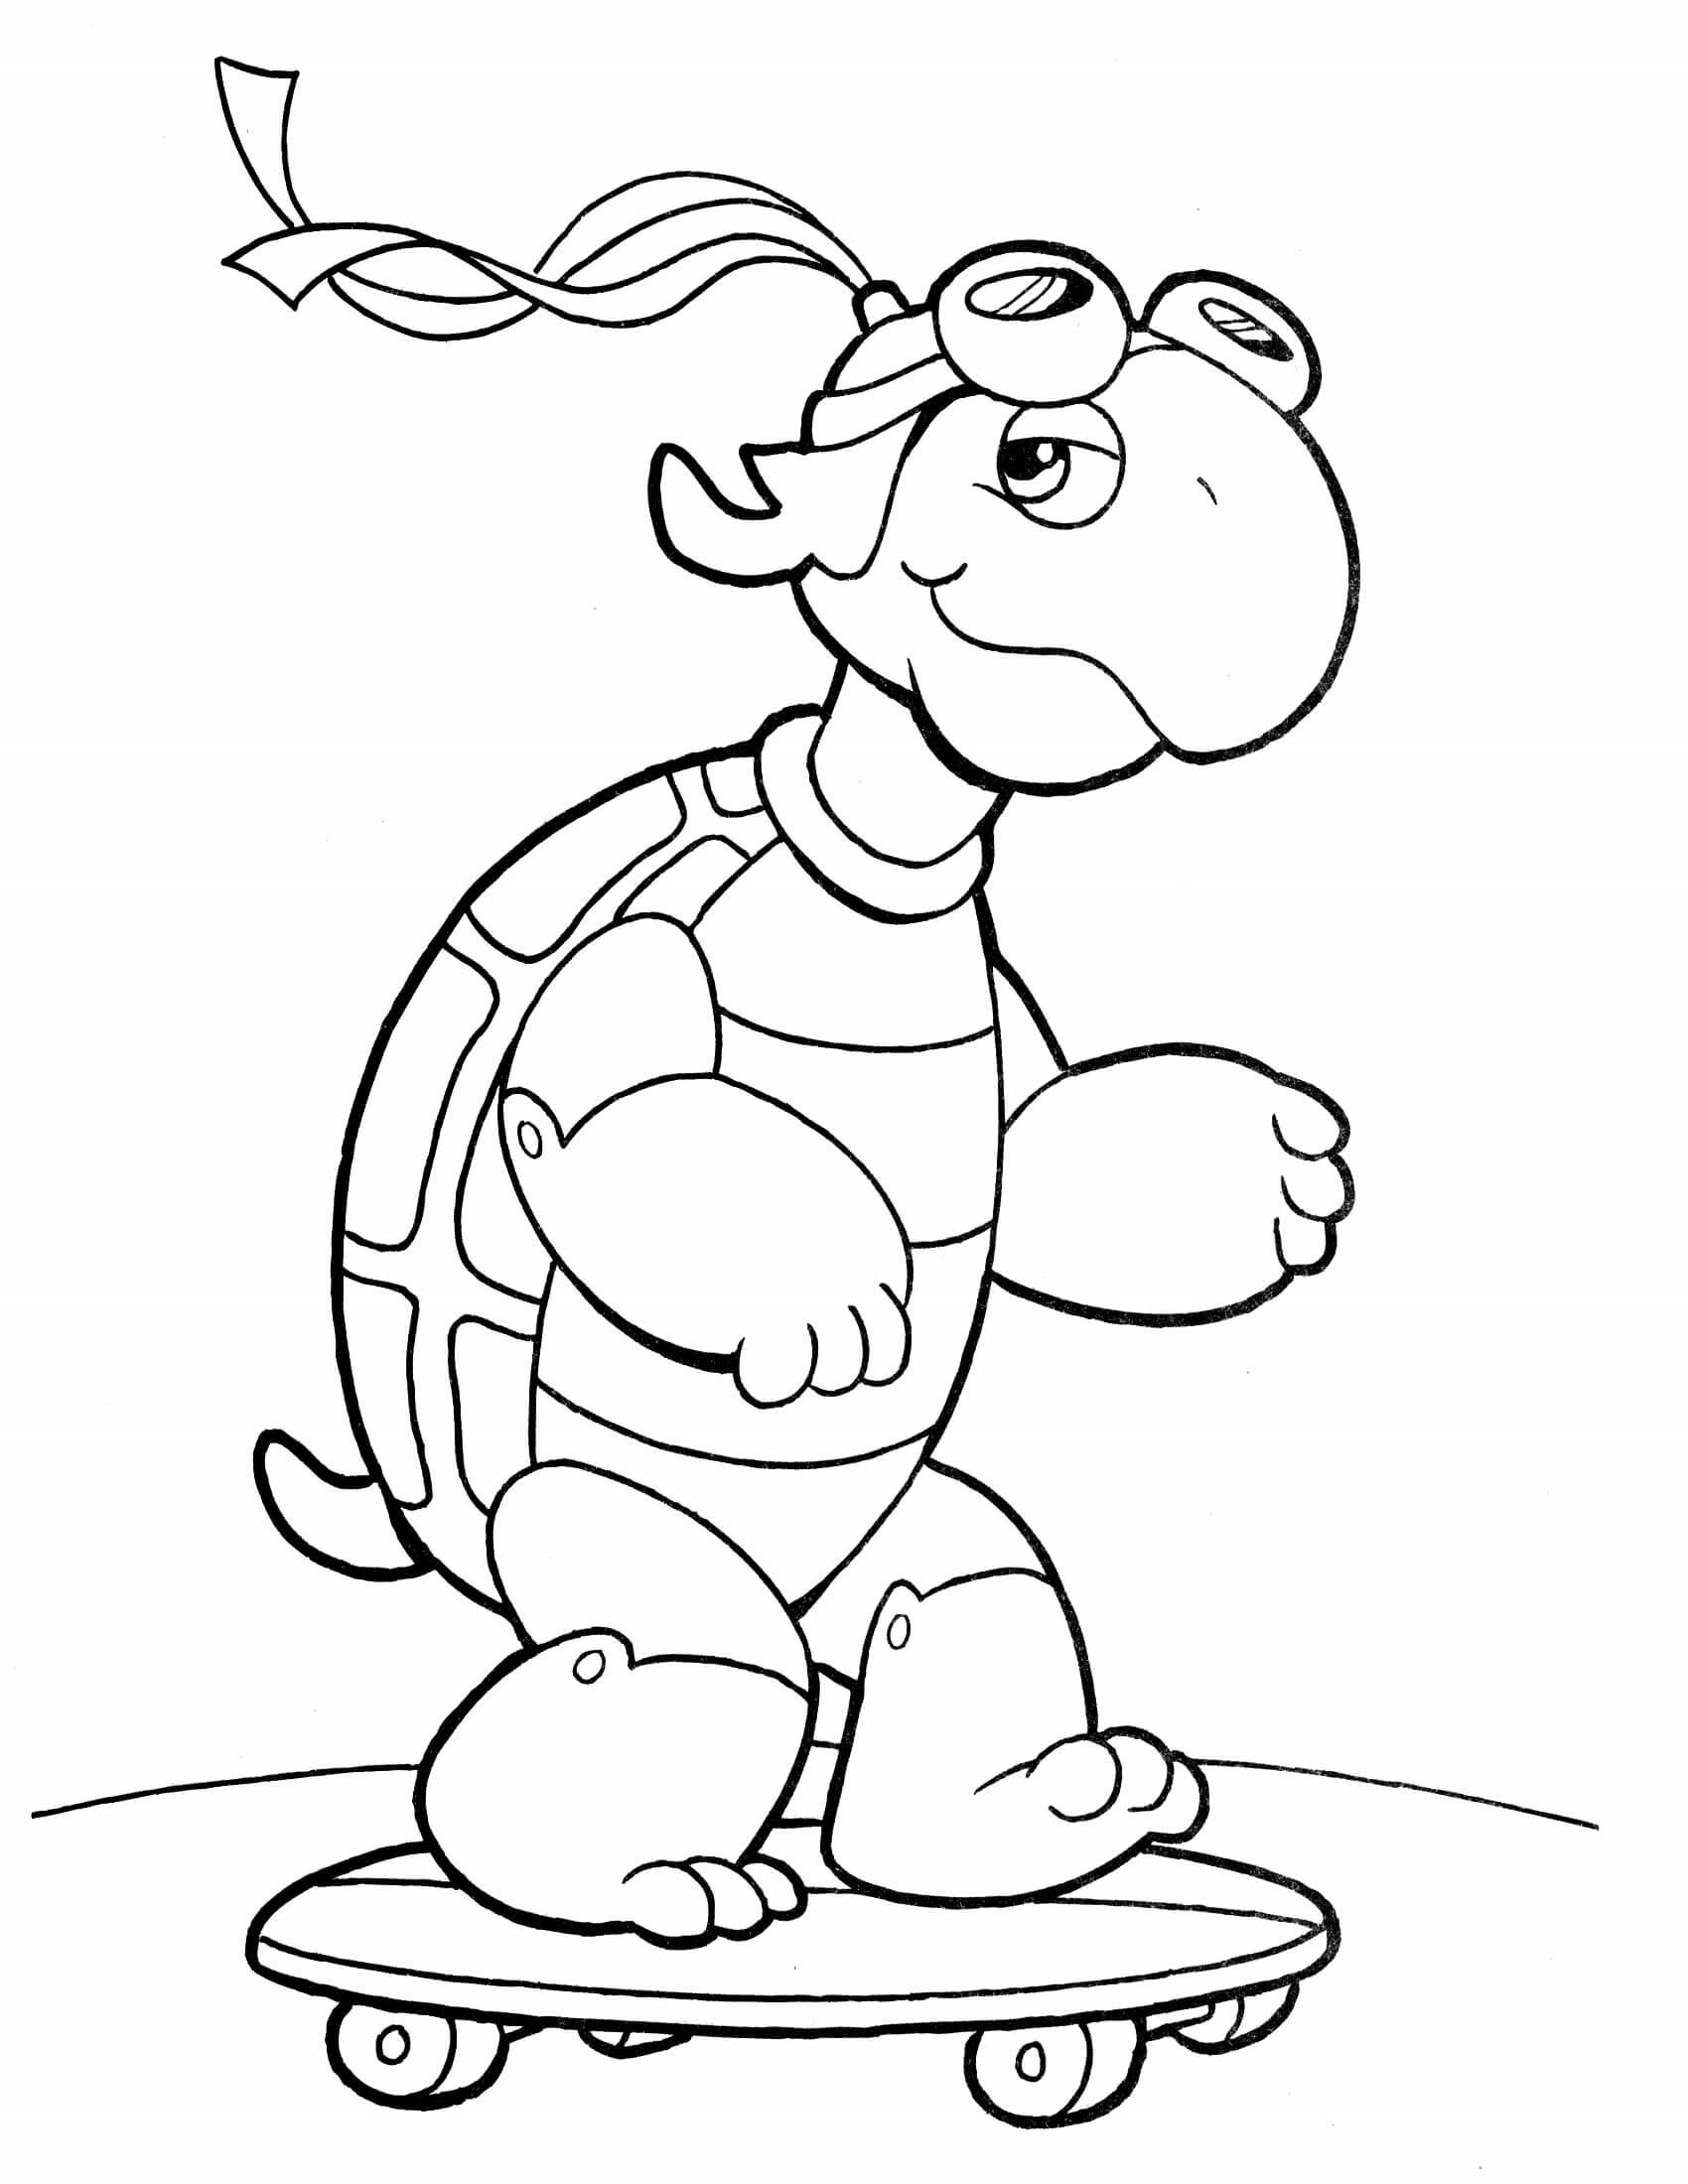 Crayola Coloring Pages Animals Learning Printable